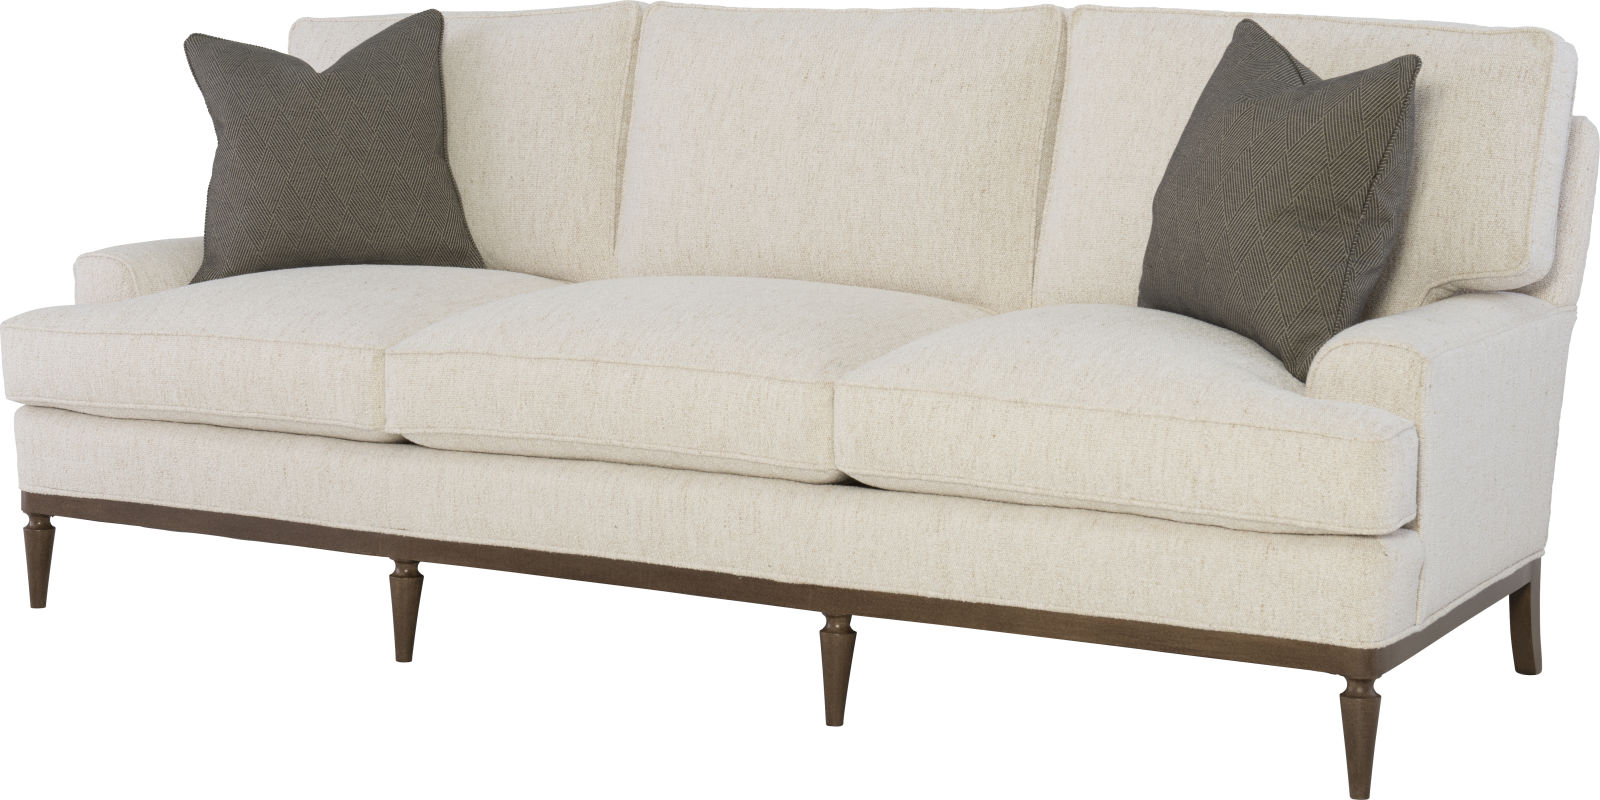 wesley hall sofas divani casa arden modern black fabric sectional sofa furniture hickory nc product page 2000